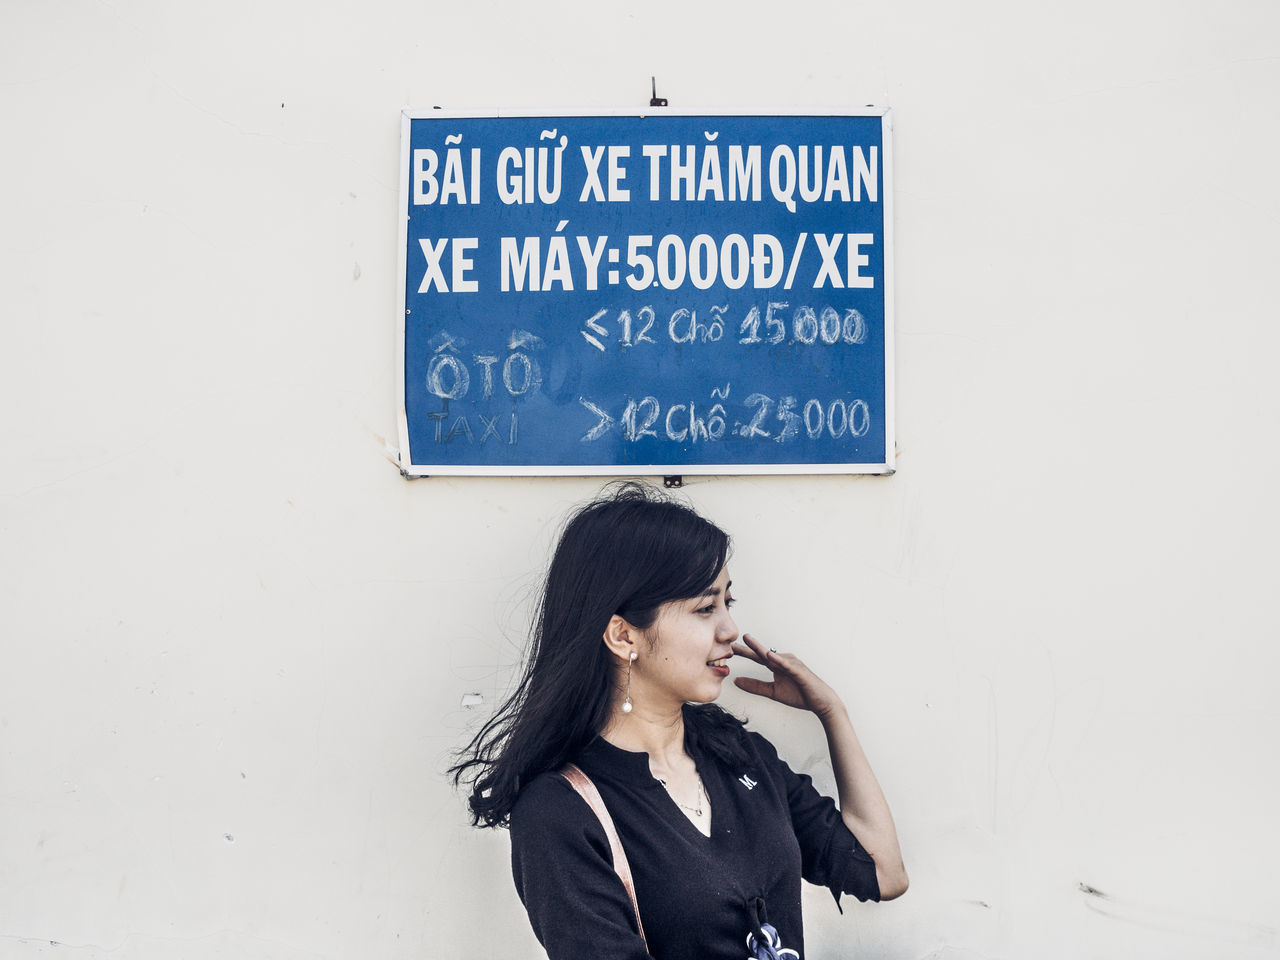 Communication Girl One Person One Woman Only Outdoors Signage Signboard Vietnamese Vietnamese Girls Young Adult